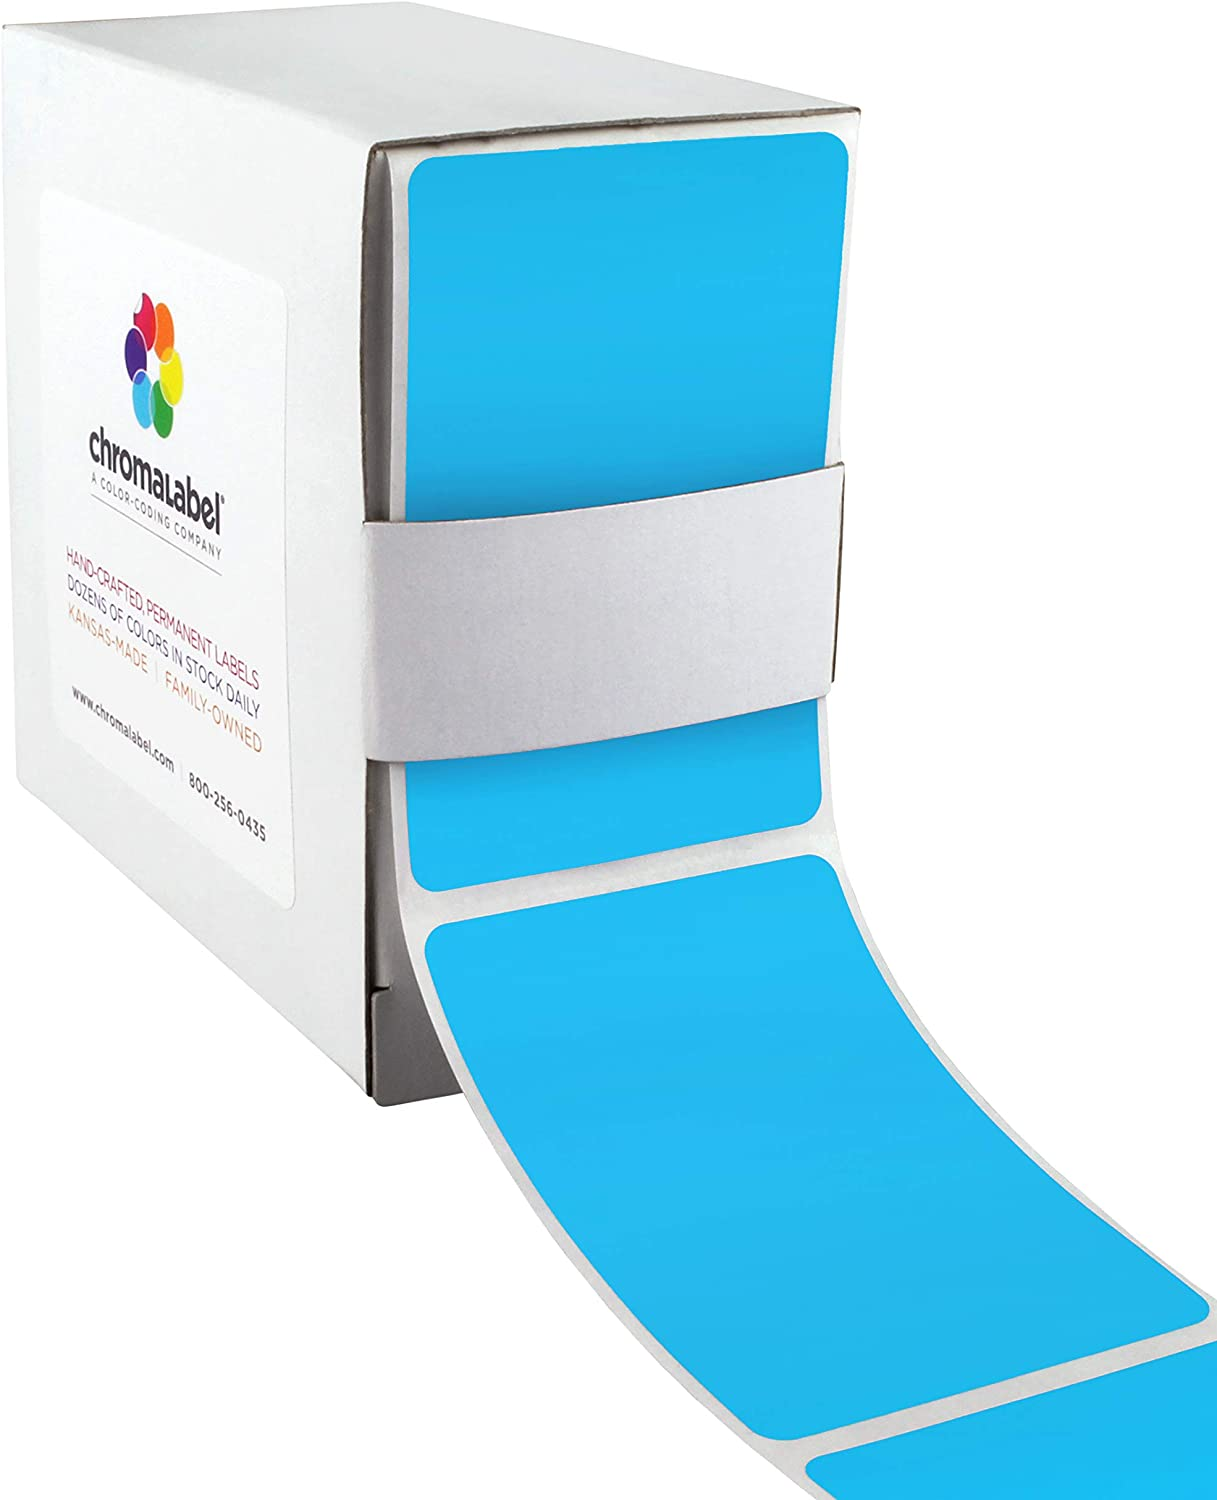 Amazon Com Chromalabel 2 X 3 Inch Color Code Labels 250 Dispenser Box Light Blue Office Products